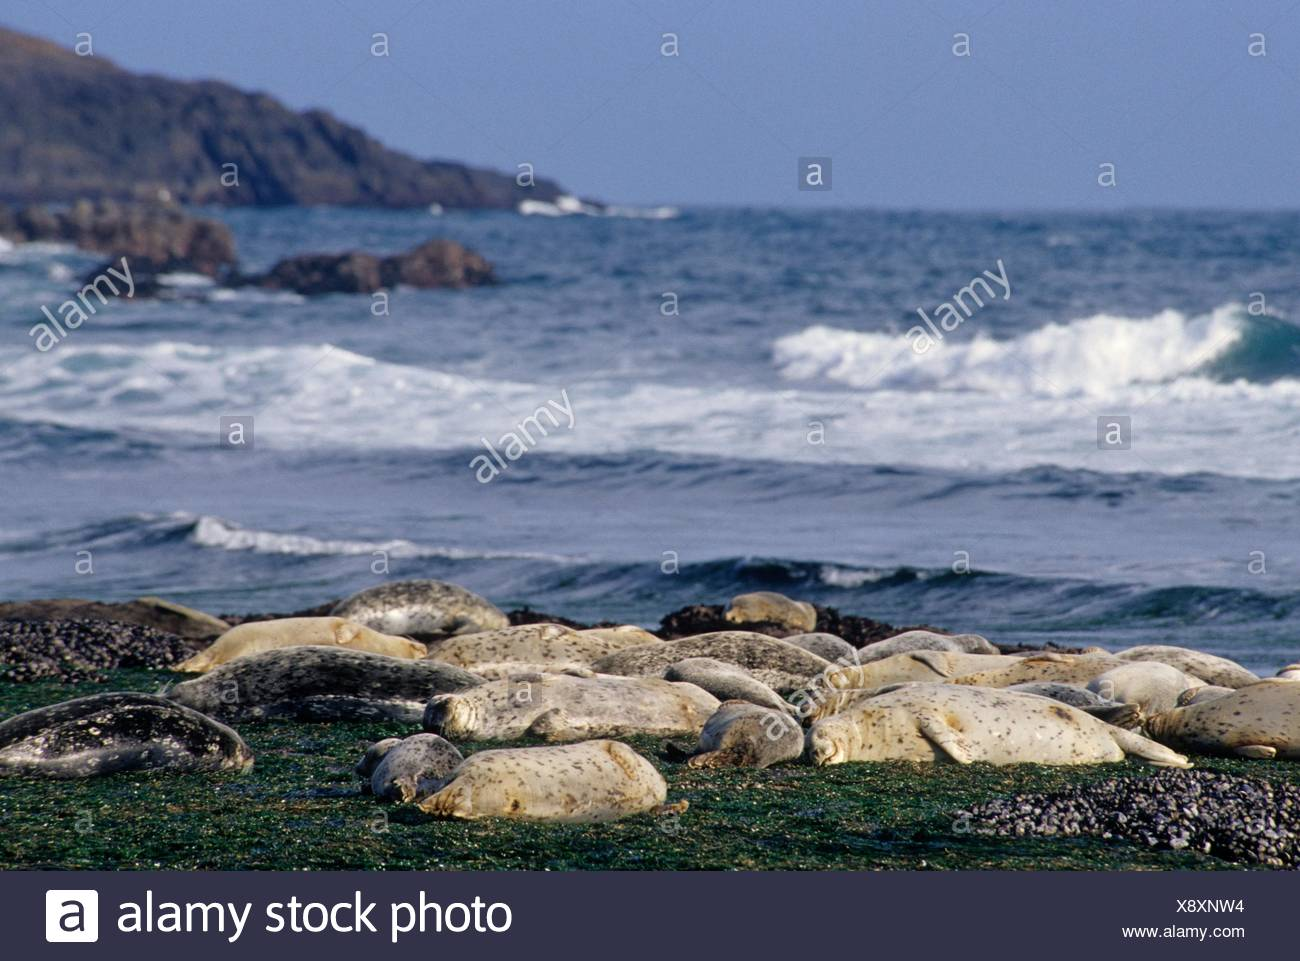 Harbor seal (Phoca vitulina) haul out, Marine Gardens State Park, Oregon. - Stock Image